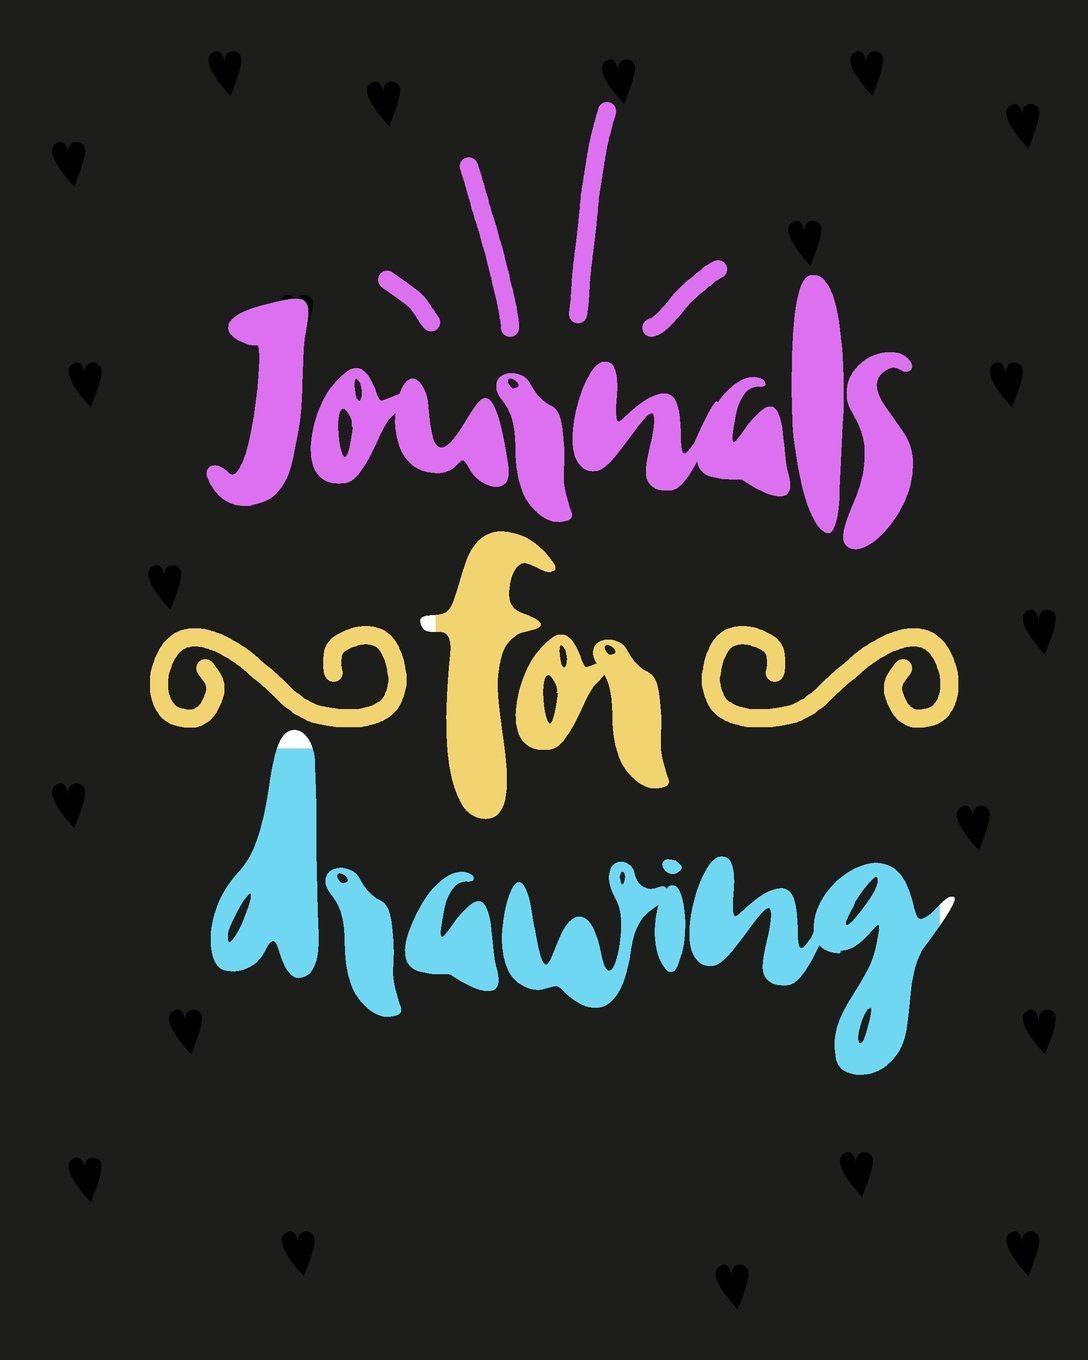 Journals For Drawing: Blank Journals To Write In, Doodle In, Draw In Or Sketch In, 8